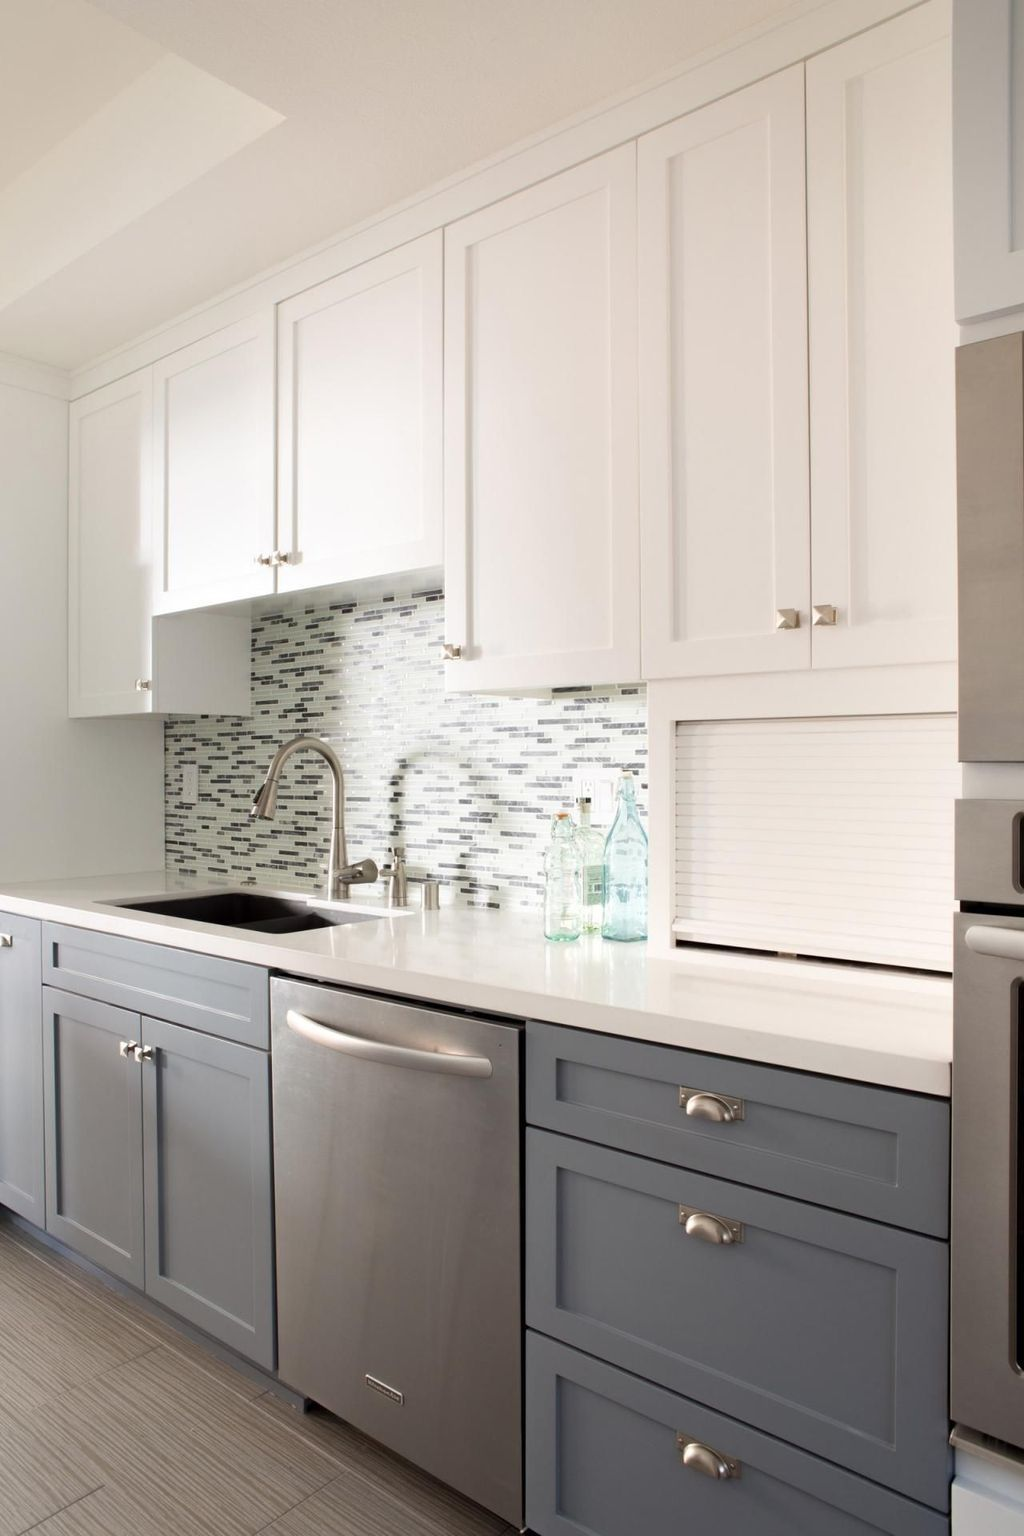 Popular Painted Kitchen Cabinets Two Tone Design Ideas 12 43 Modern Paint Colors Ideas In 2020 Best Kitchen Cabinets Kitchen Cabinet Trends Refacing Kitchen Cabinets